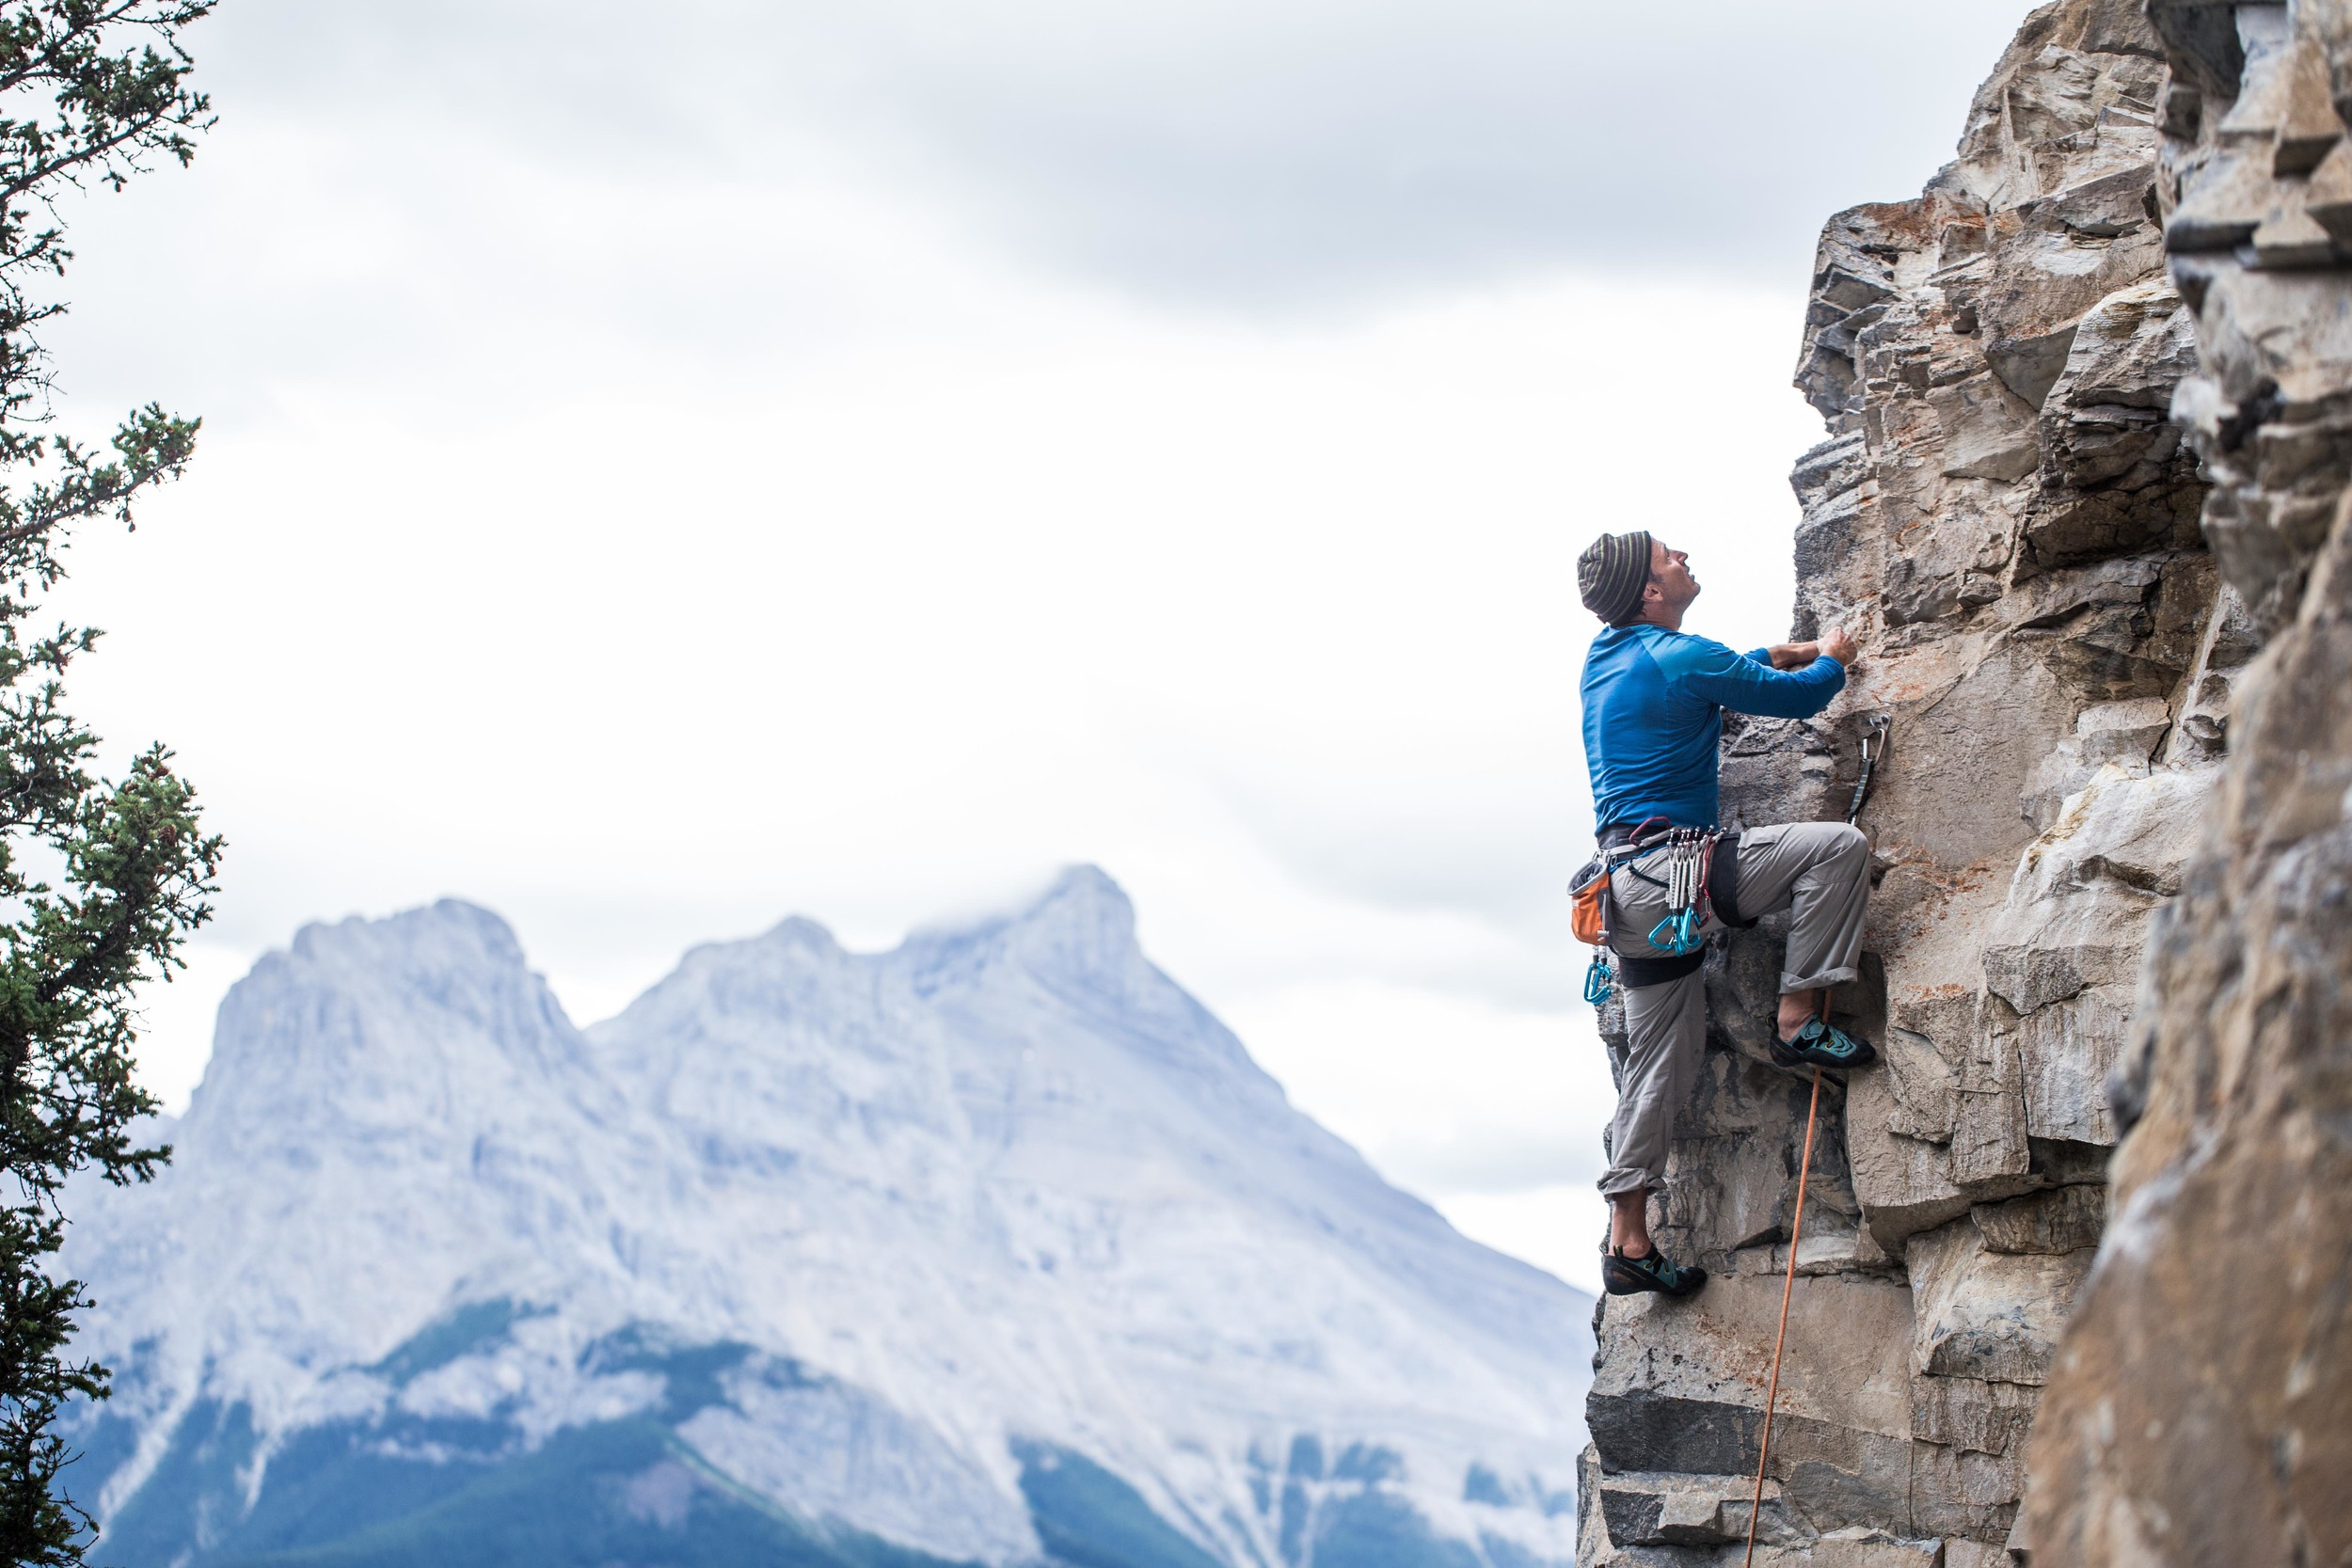 """One of the many crags we visited in the bow valley; the memorable """"look out"""". An epic approach followed by some great climbing."""